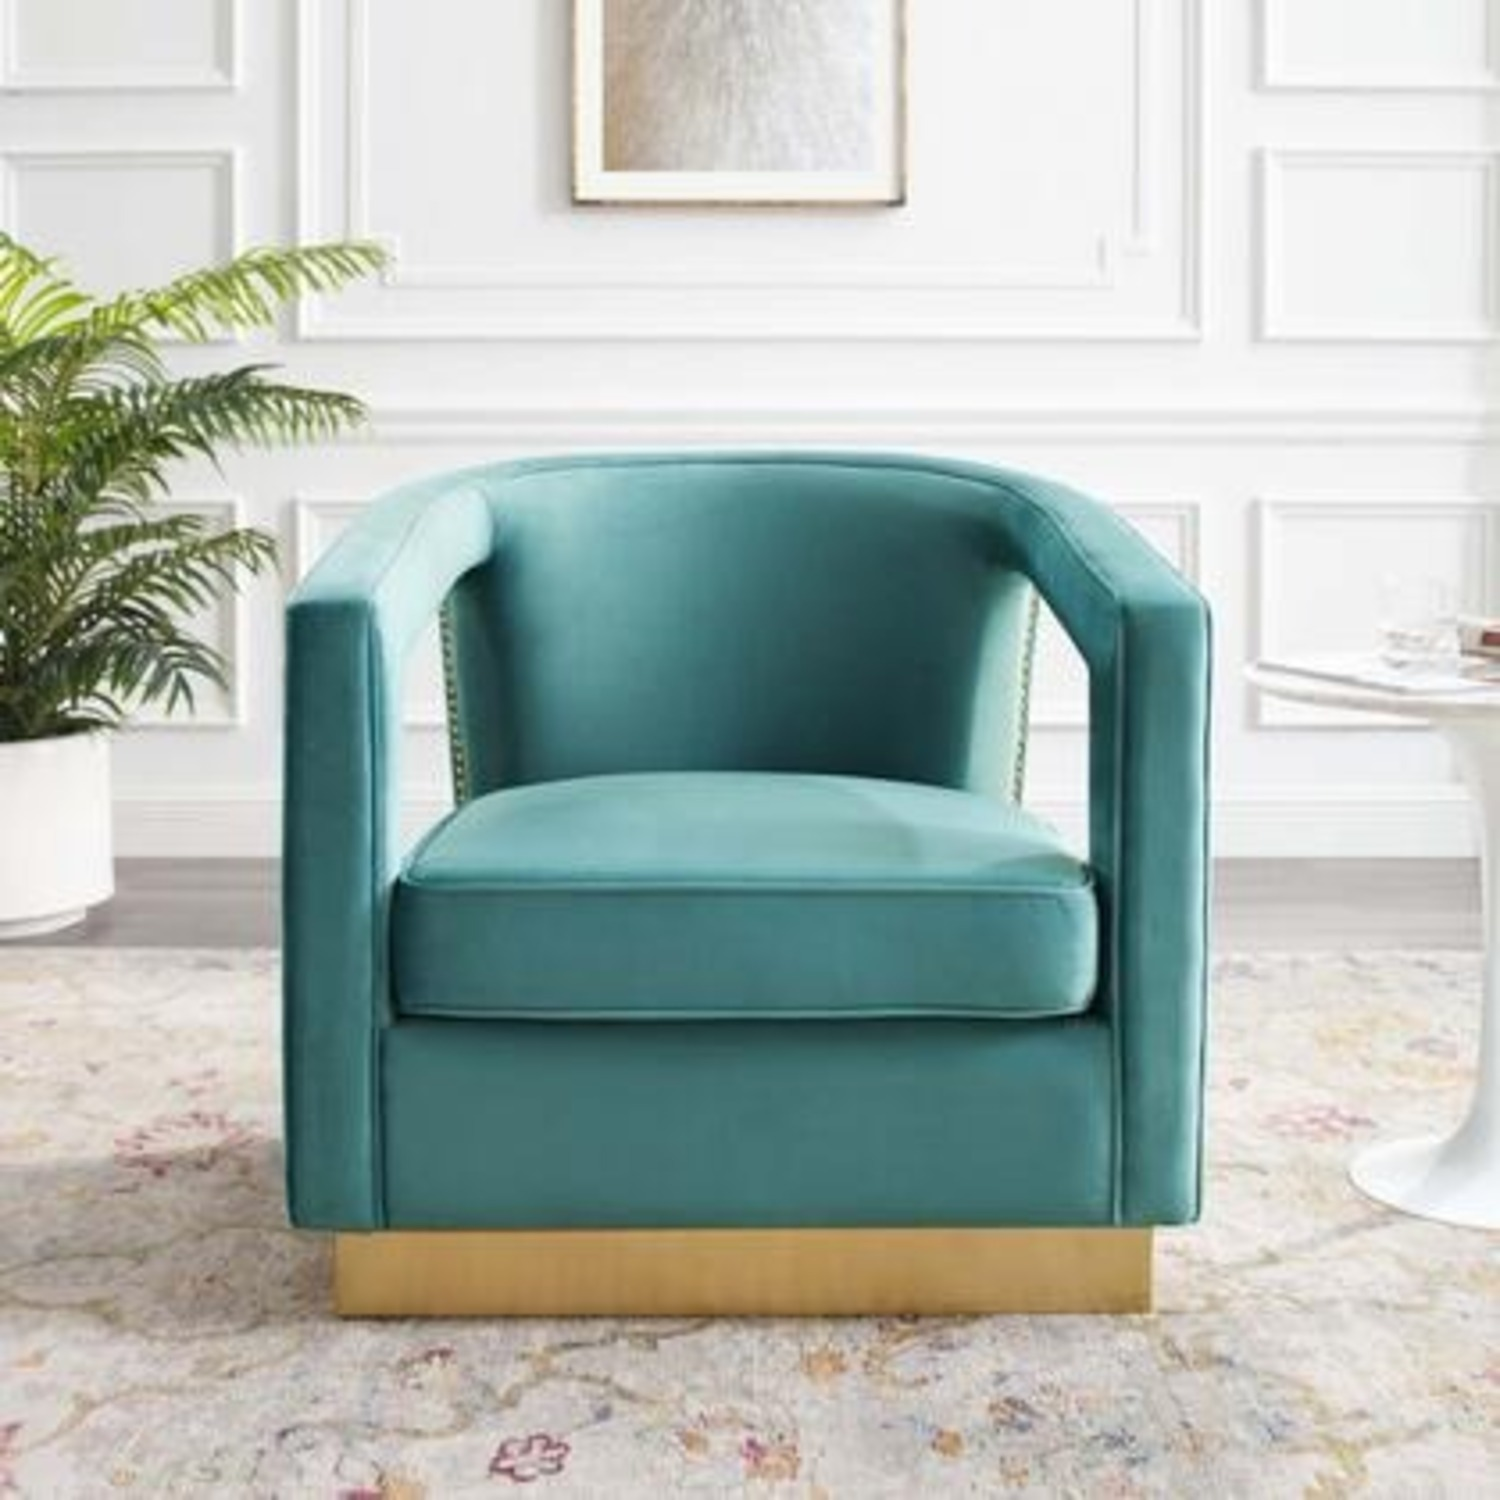 Glam Deco Style Armchair In Mint Velvet Fabric - image-6